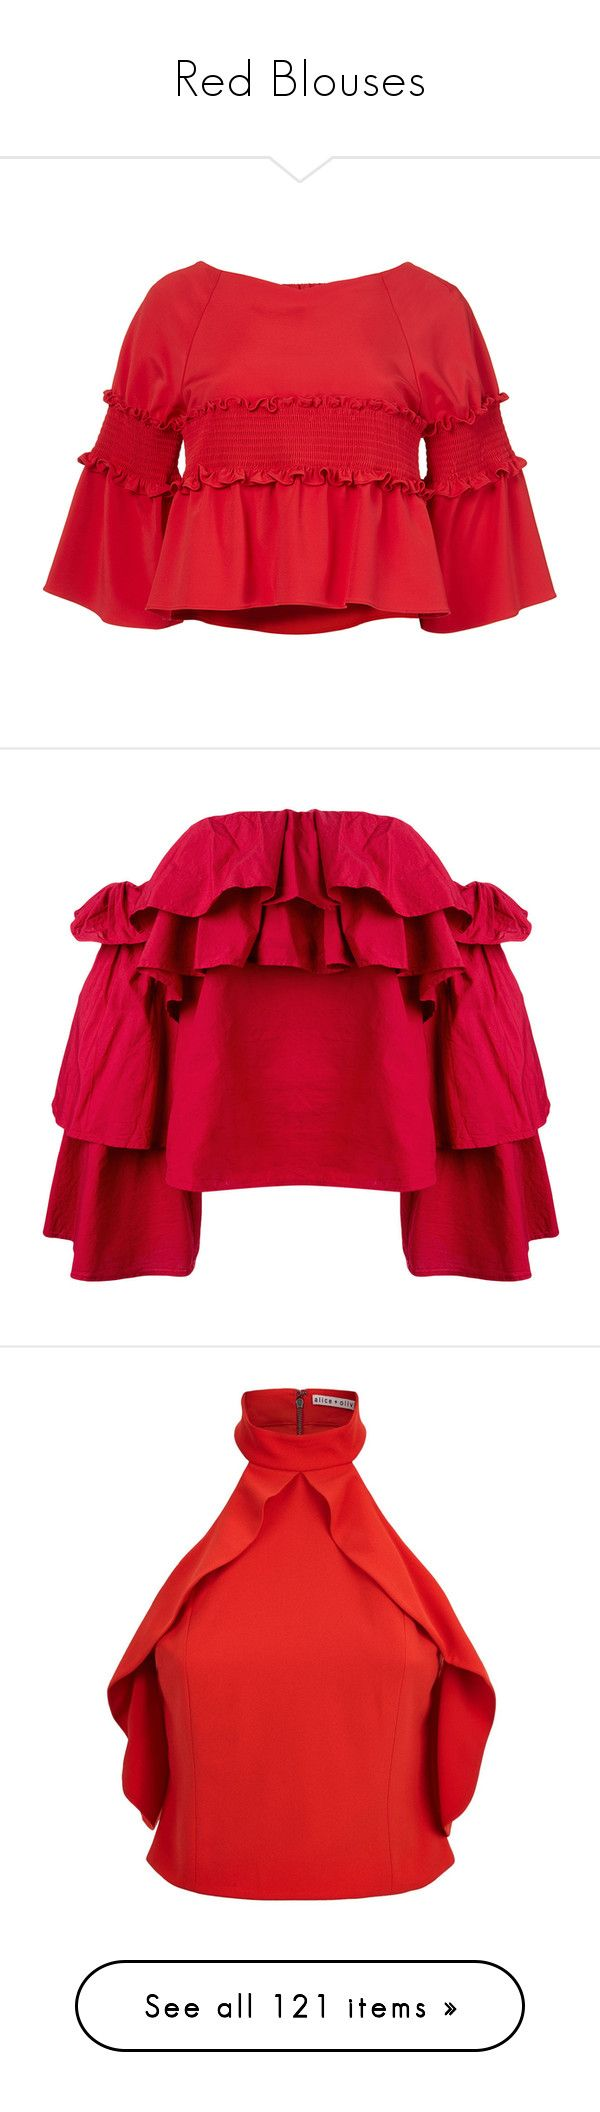 """Red Blouses"" by kikikoji ❤ liked on Polyvore featuring tops, red ruched top, stretchy crop top, tibi top, red peplum top, peplum tops, blouses, red, red top and off the shoulder tops"